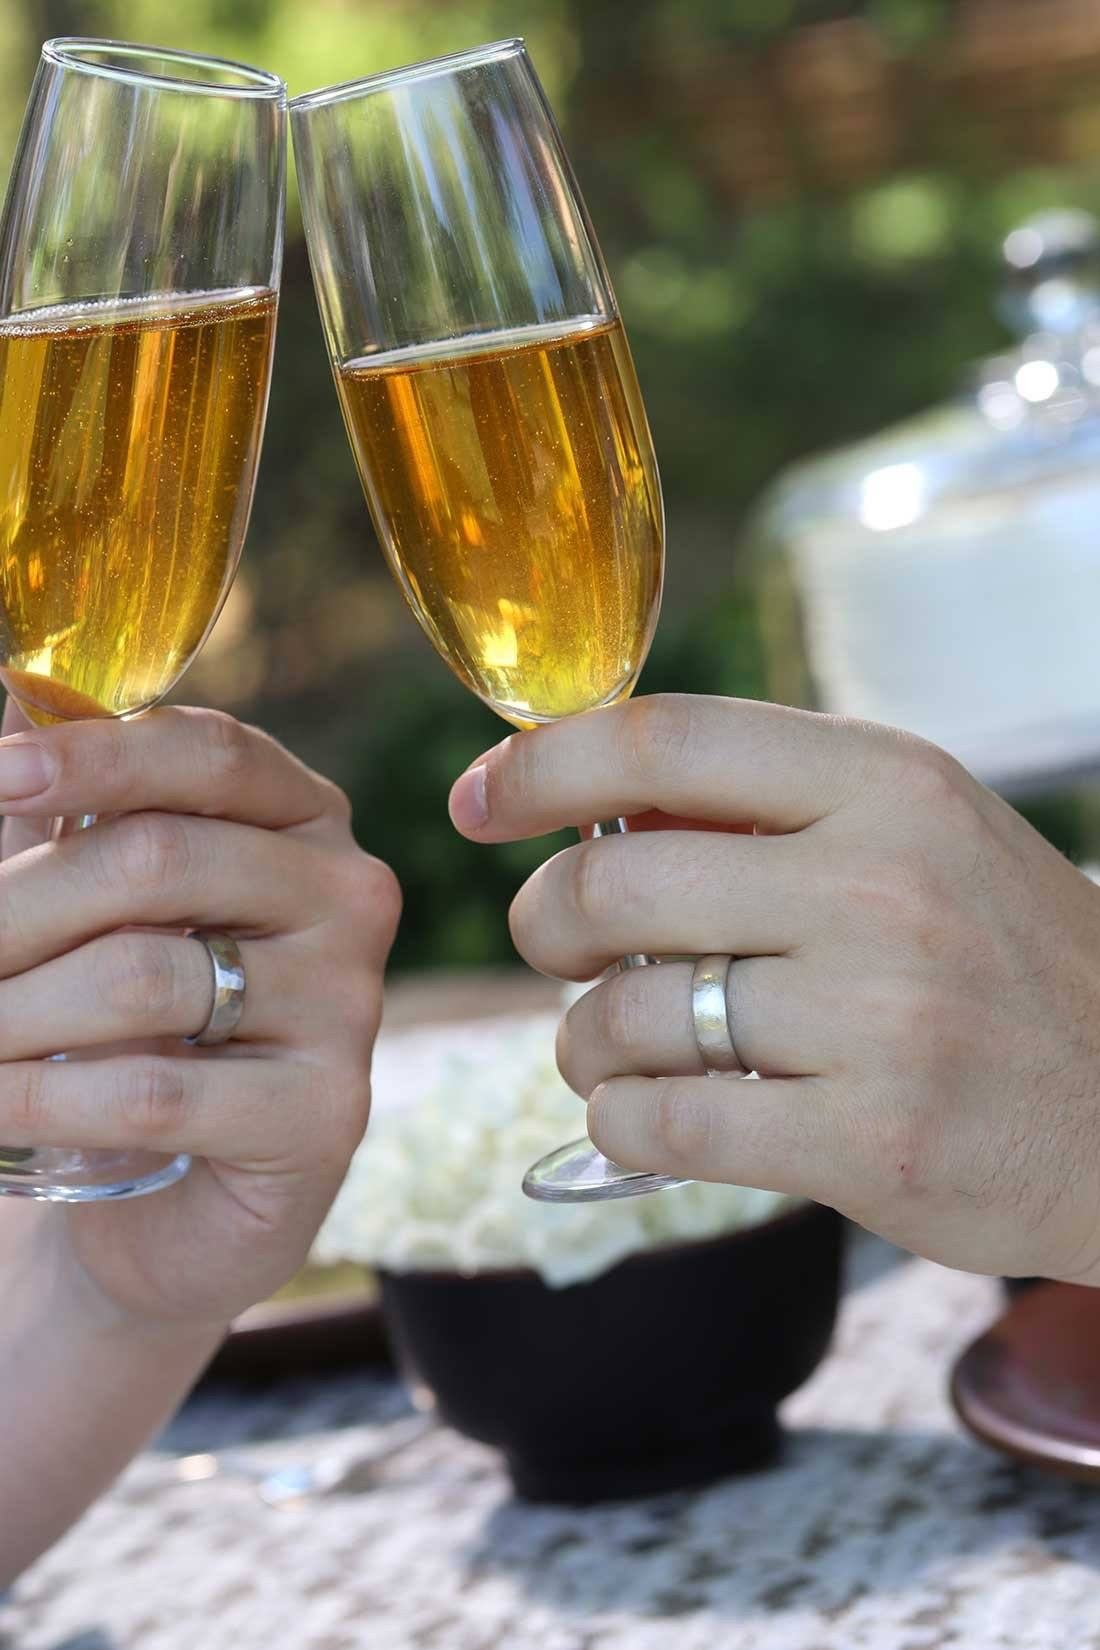 Worn and Hammered Texture Wedding Bands on hand toasting with cider - rings handmade by Beth Cyr